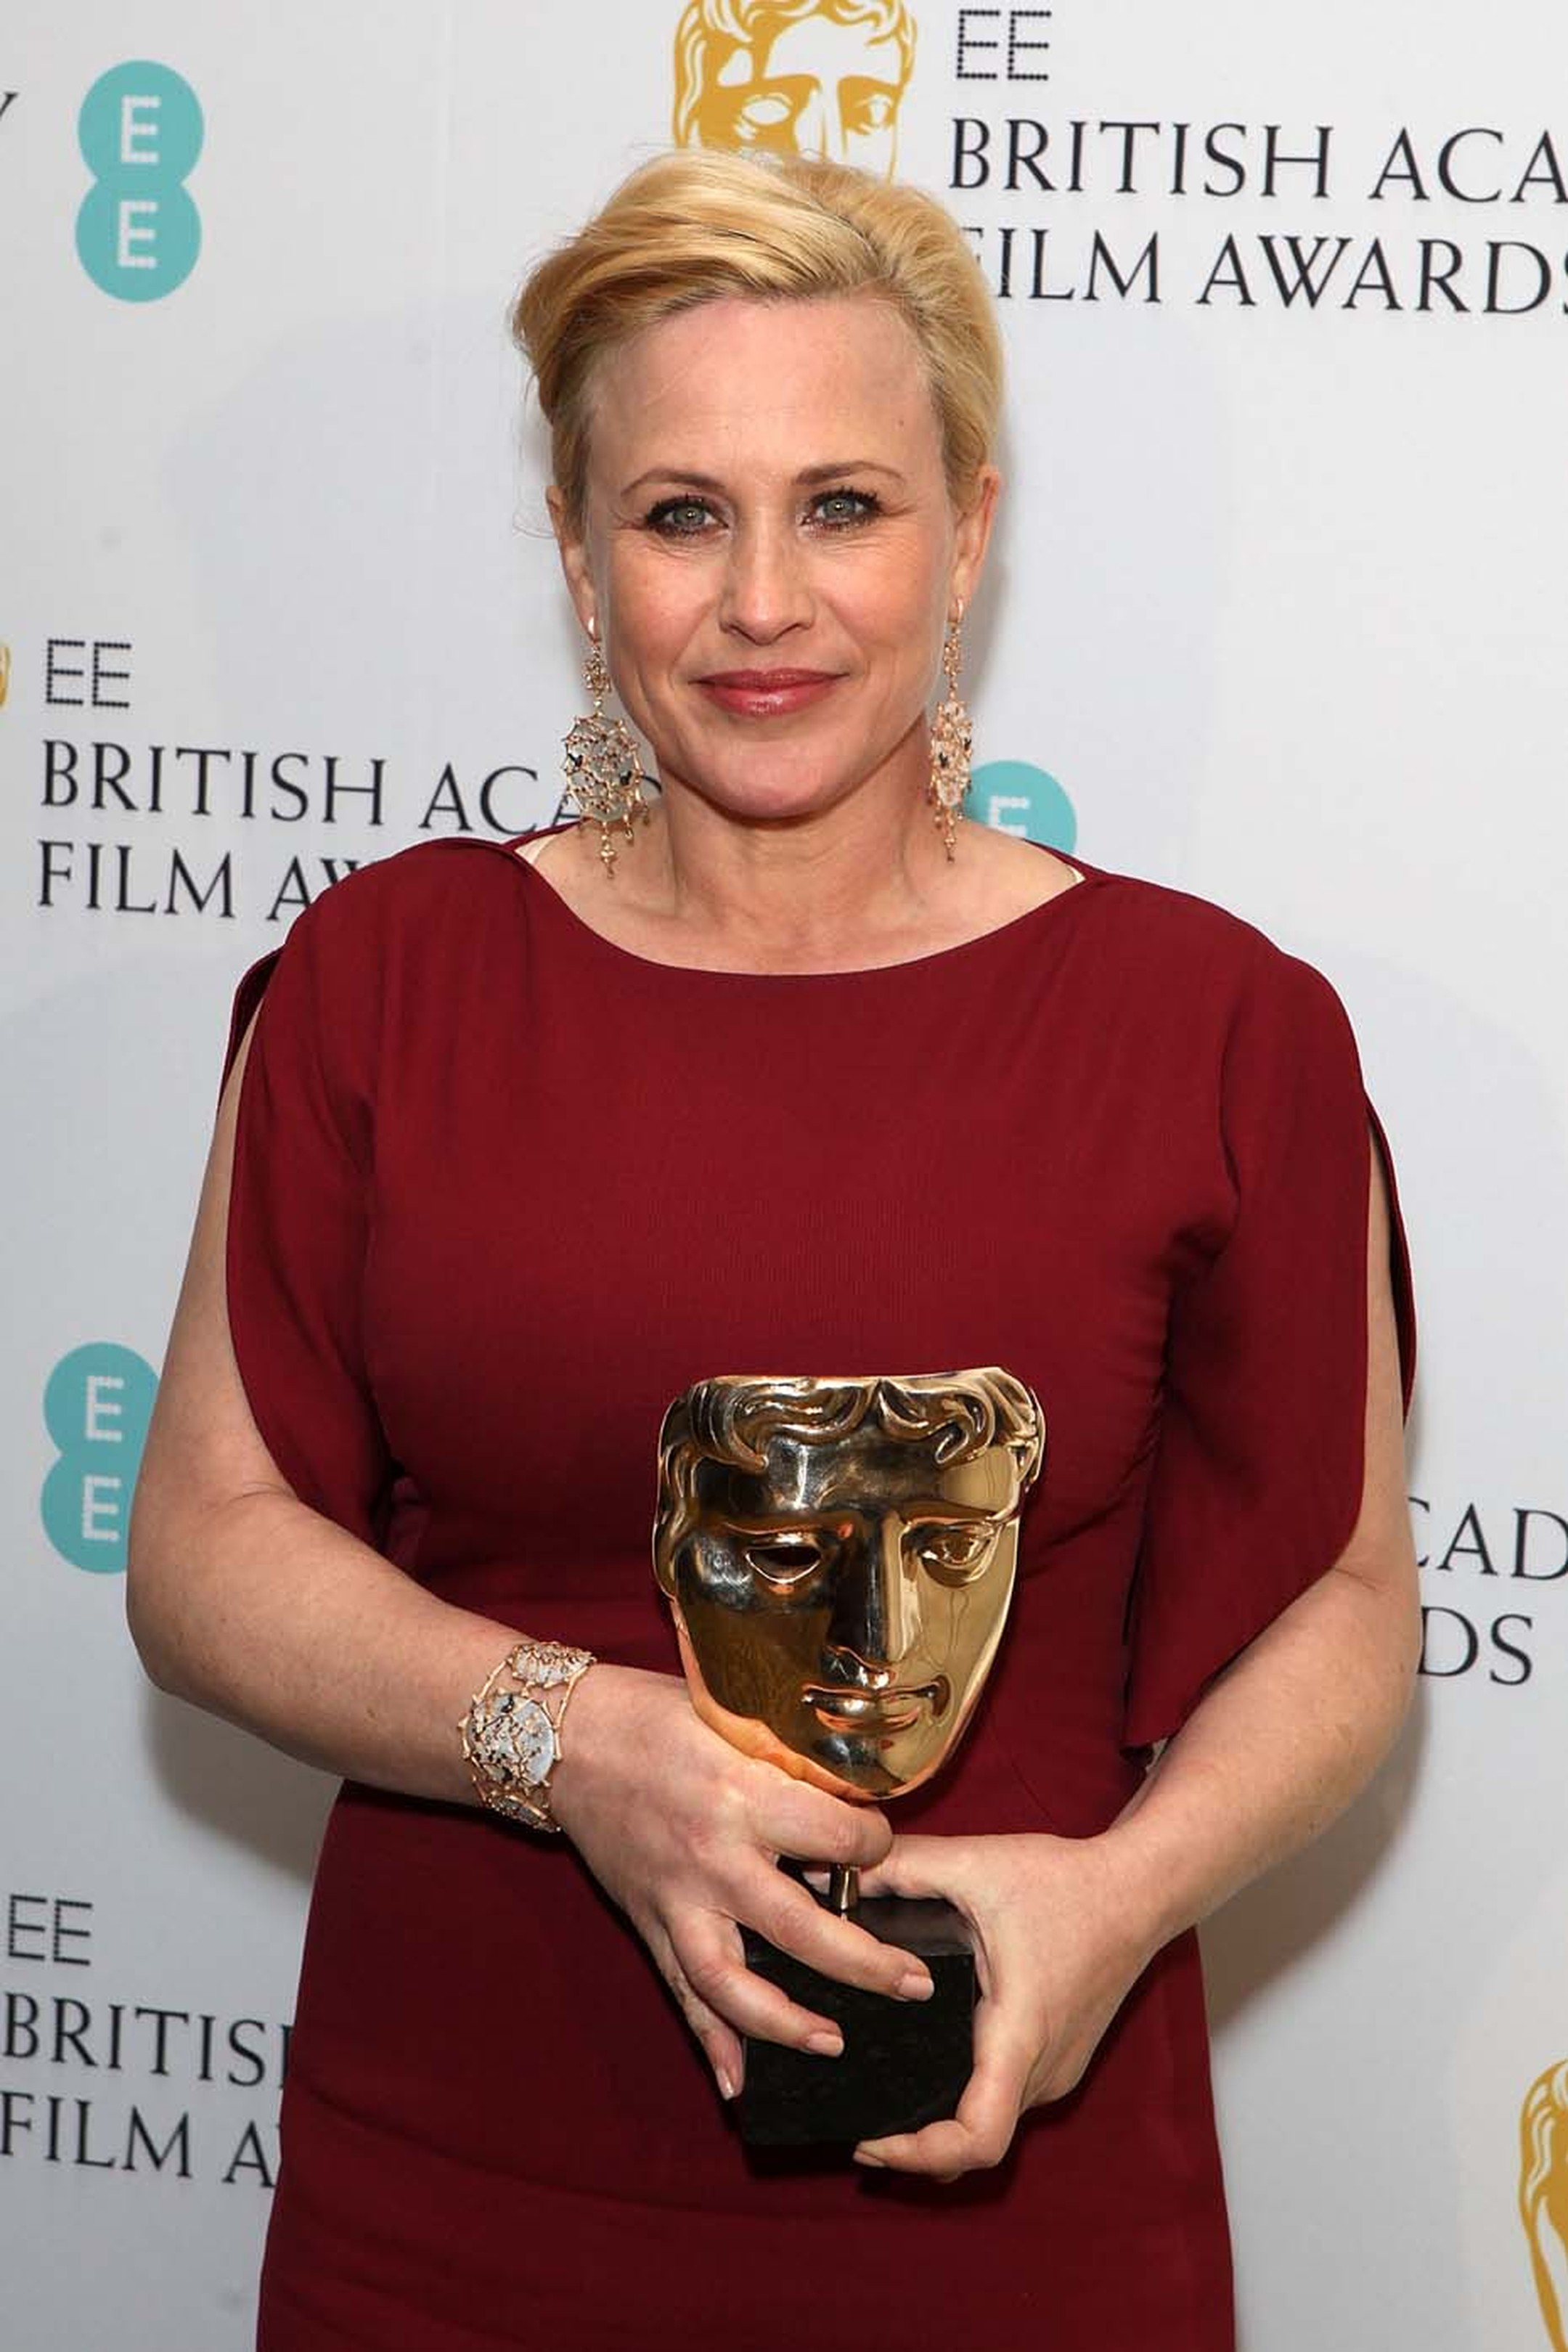 BAFTA Best Supporting Actress winner, Patricia Arquette, received her award at the ceremony at London's Royal Opera House wearing Annoushka Dream Catcher earrings and cuff.